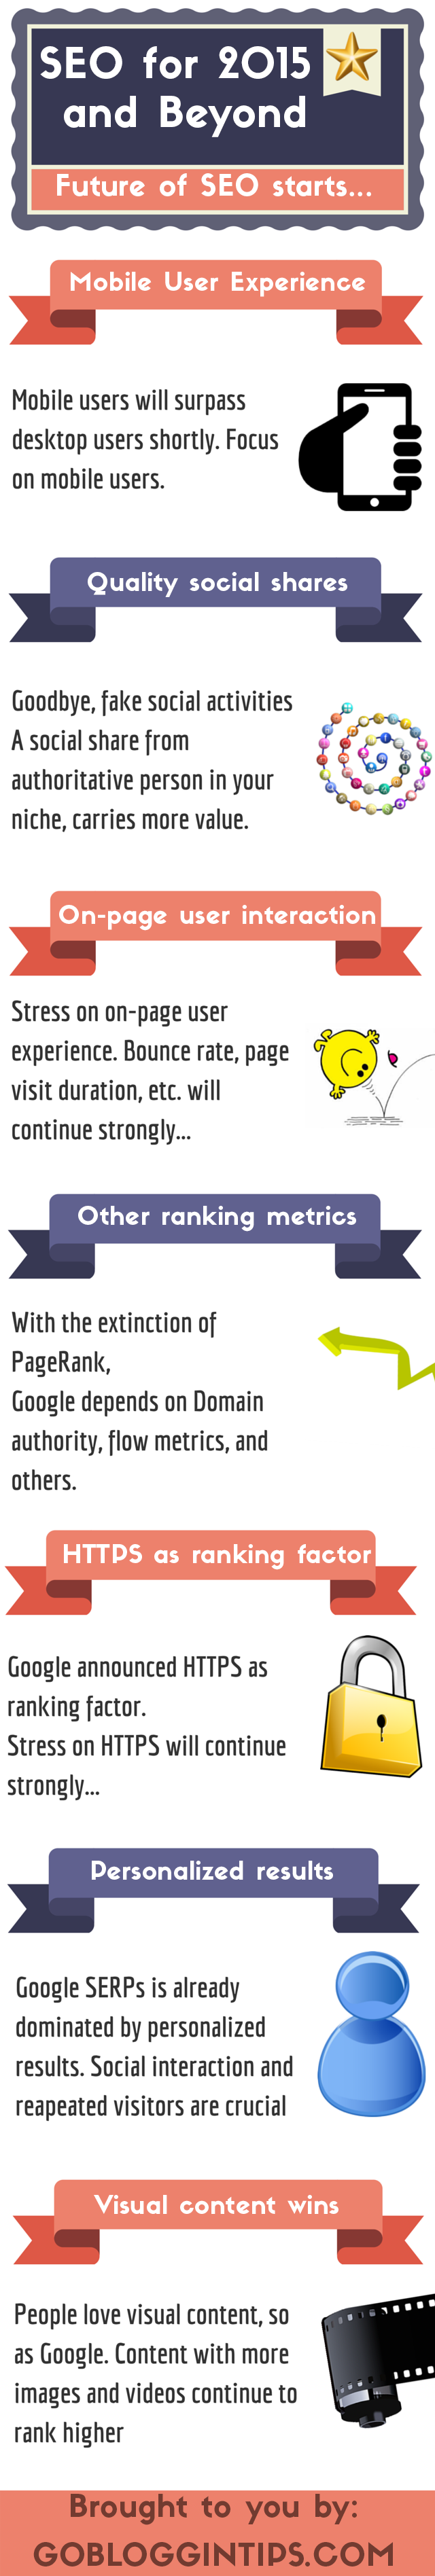 seo-link-building-trends